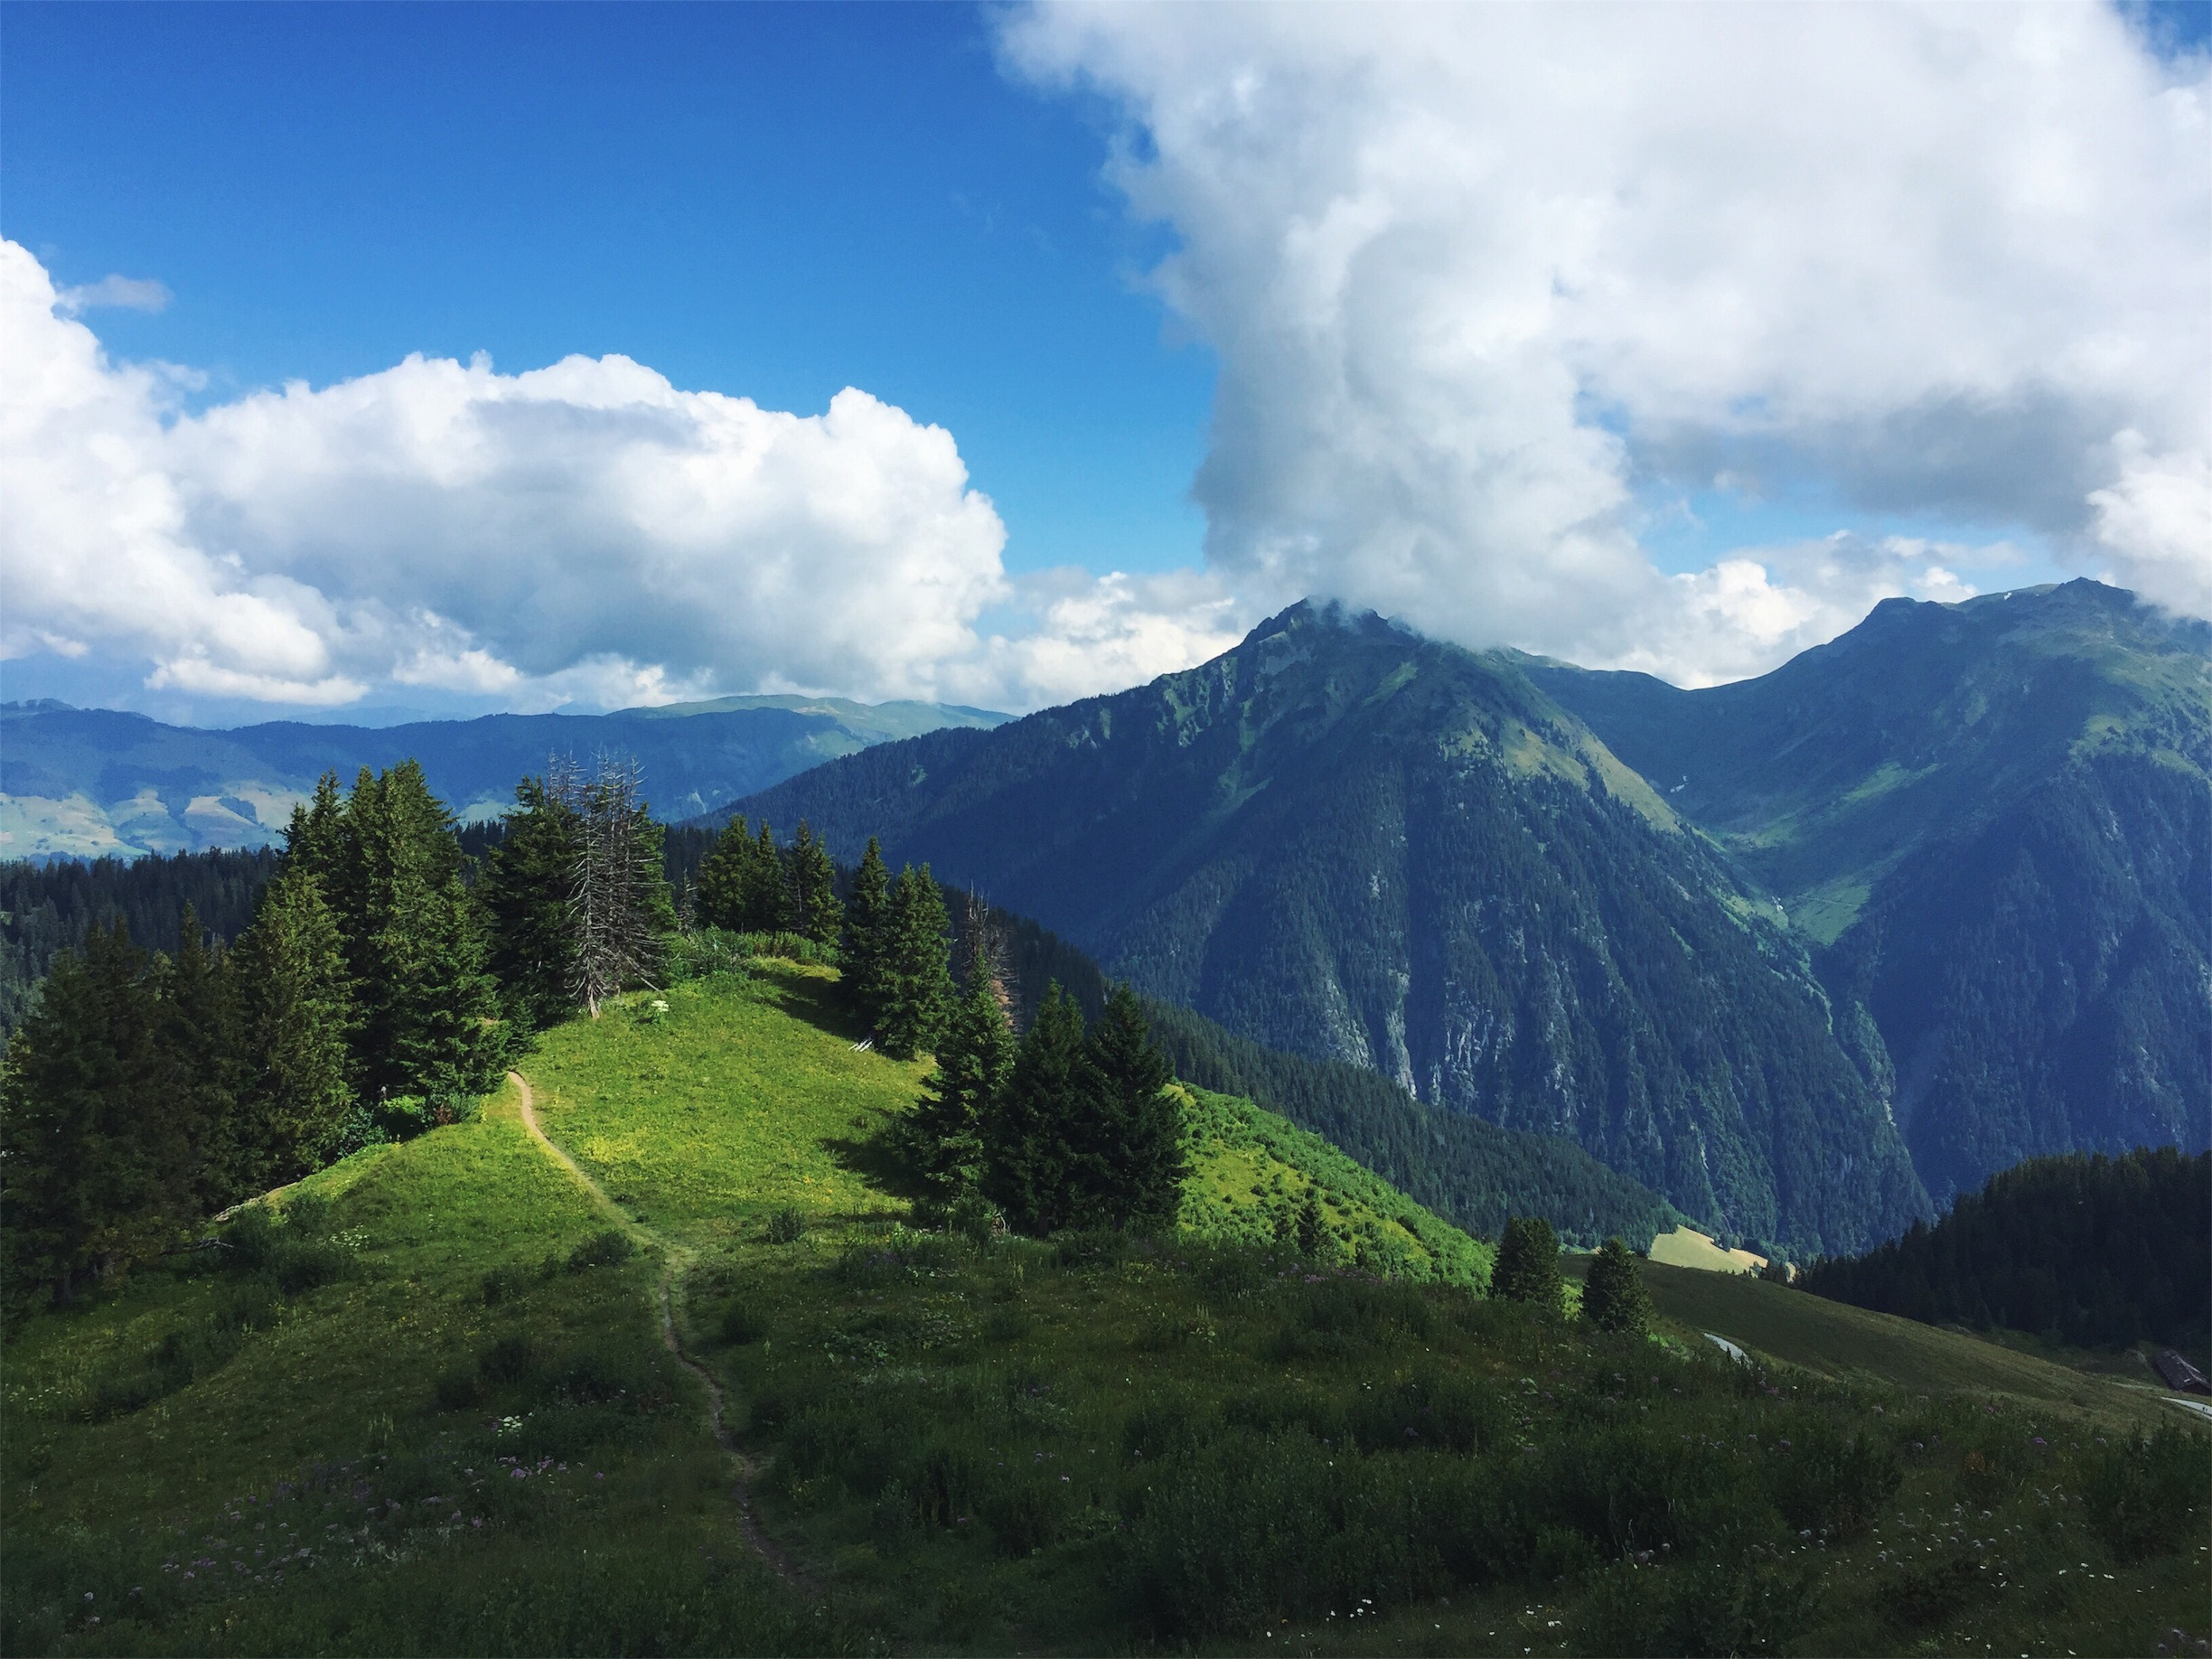 Hiking in the French Alpes, July 2018.